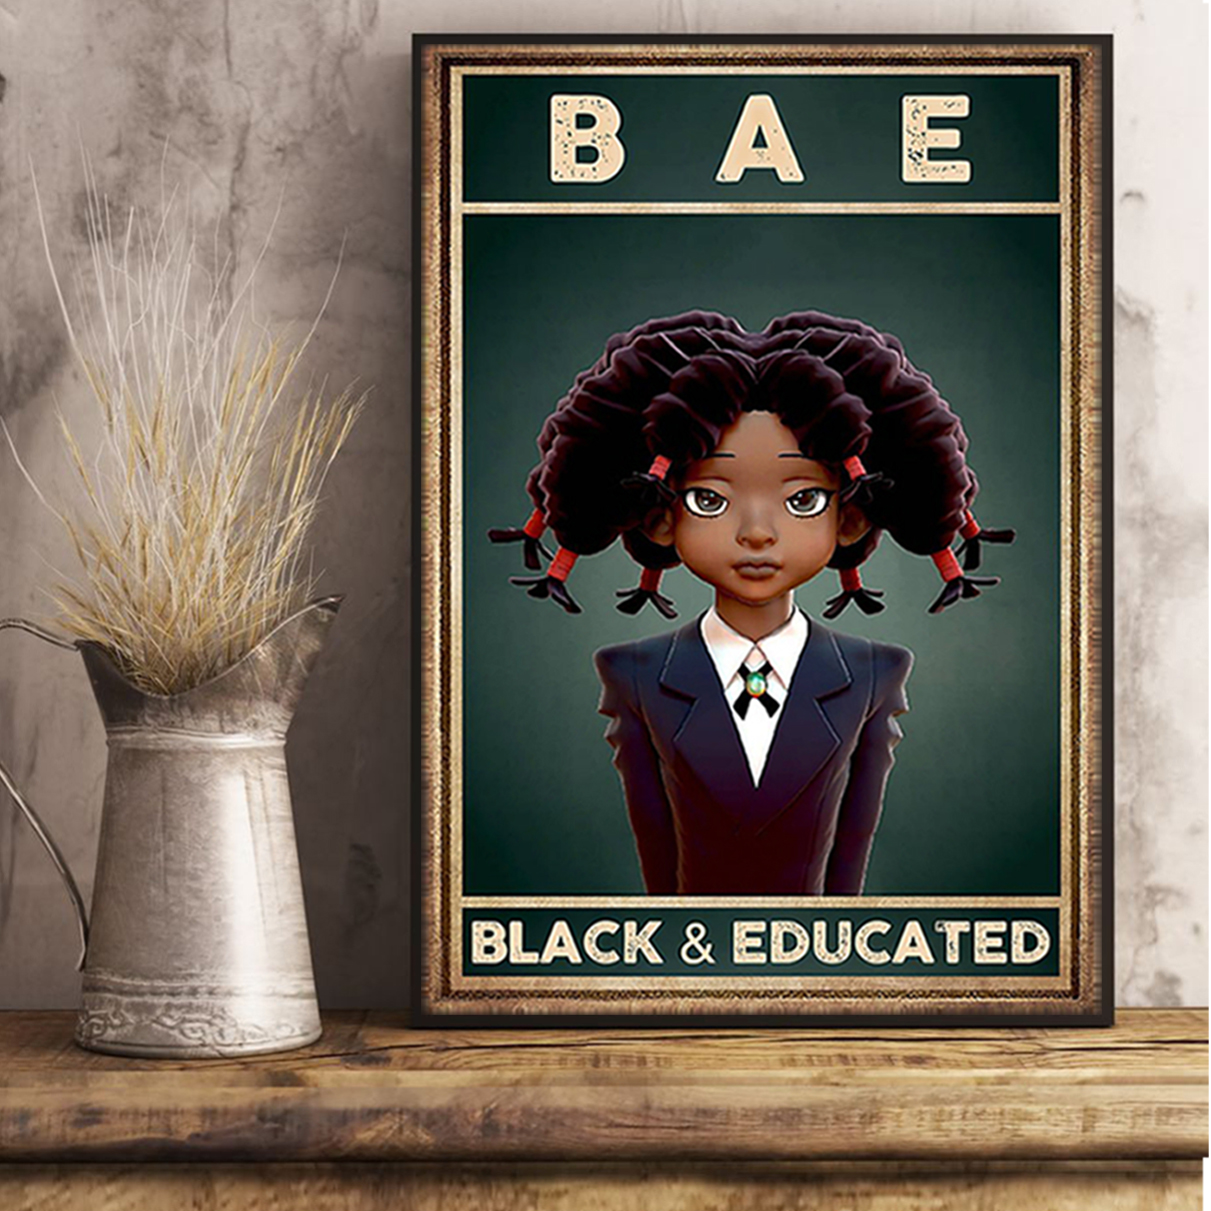 BAE black and educated poster A1